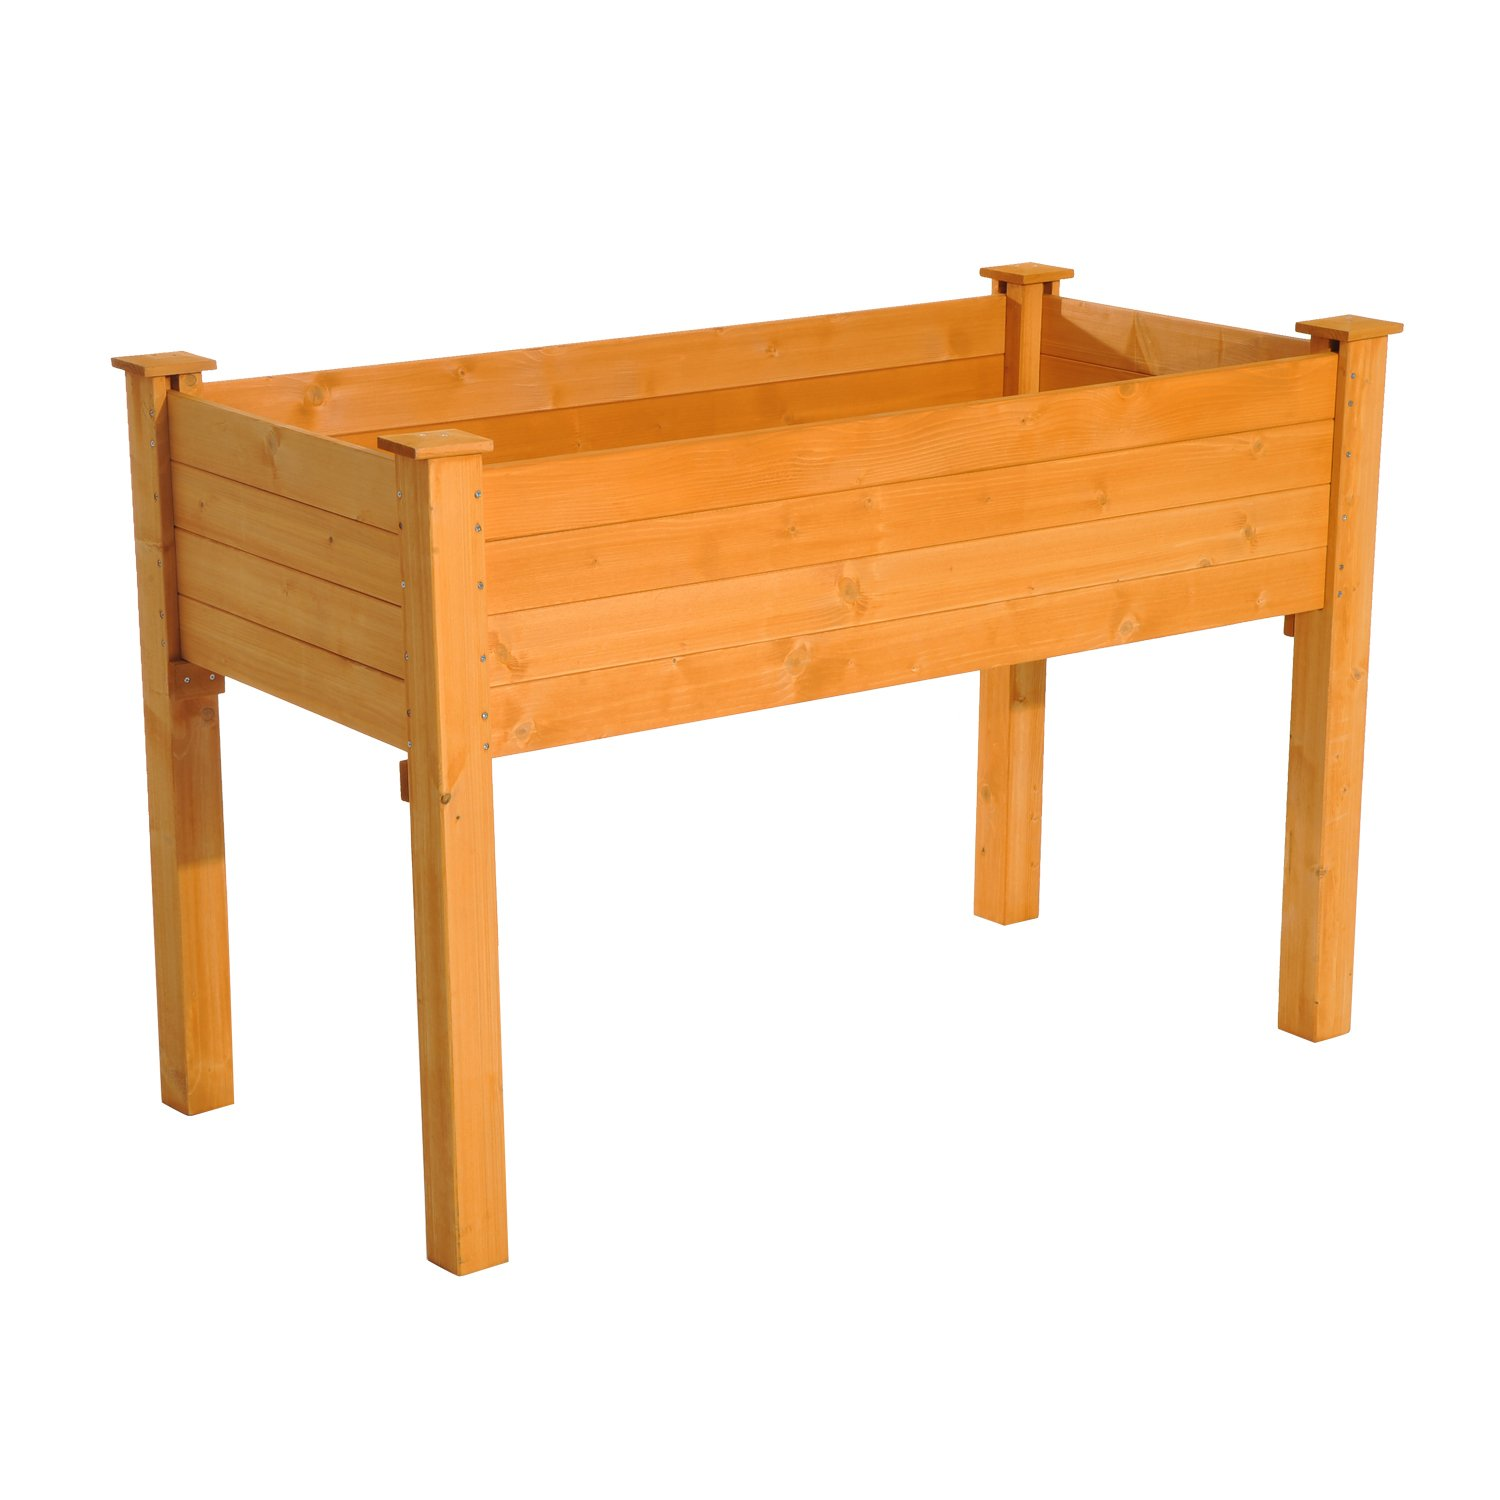 Outsunny Elevated Garden 2' x 4' Wooden Flower Bed Planter Box by Outsunny